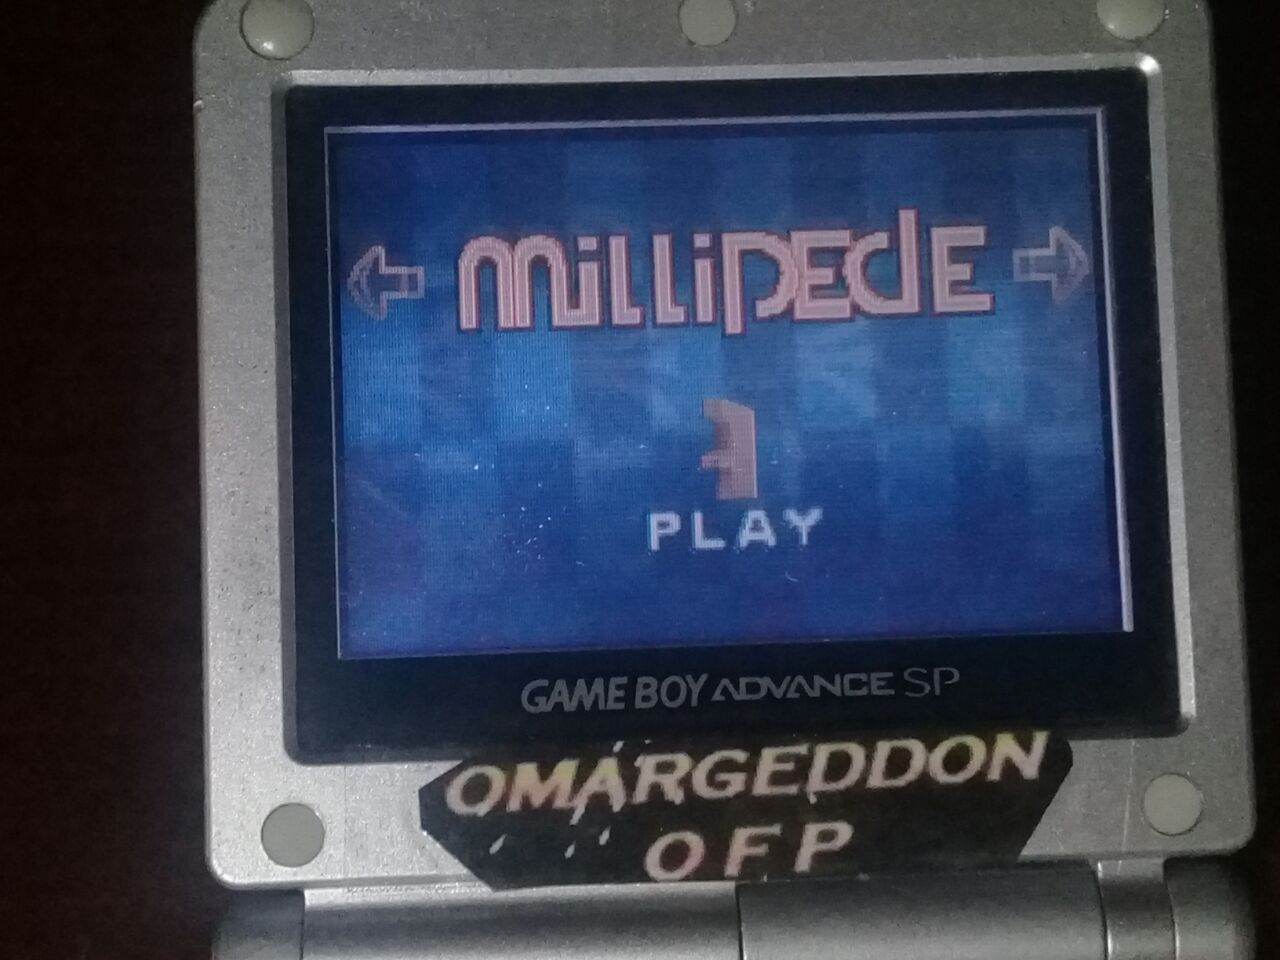 omargeddon: Millipede (GBA) 58,427 points on 2018-01-25 20:36:40